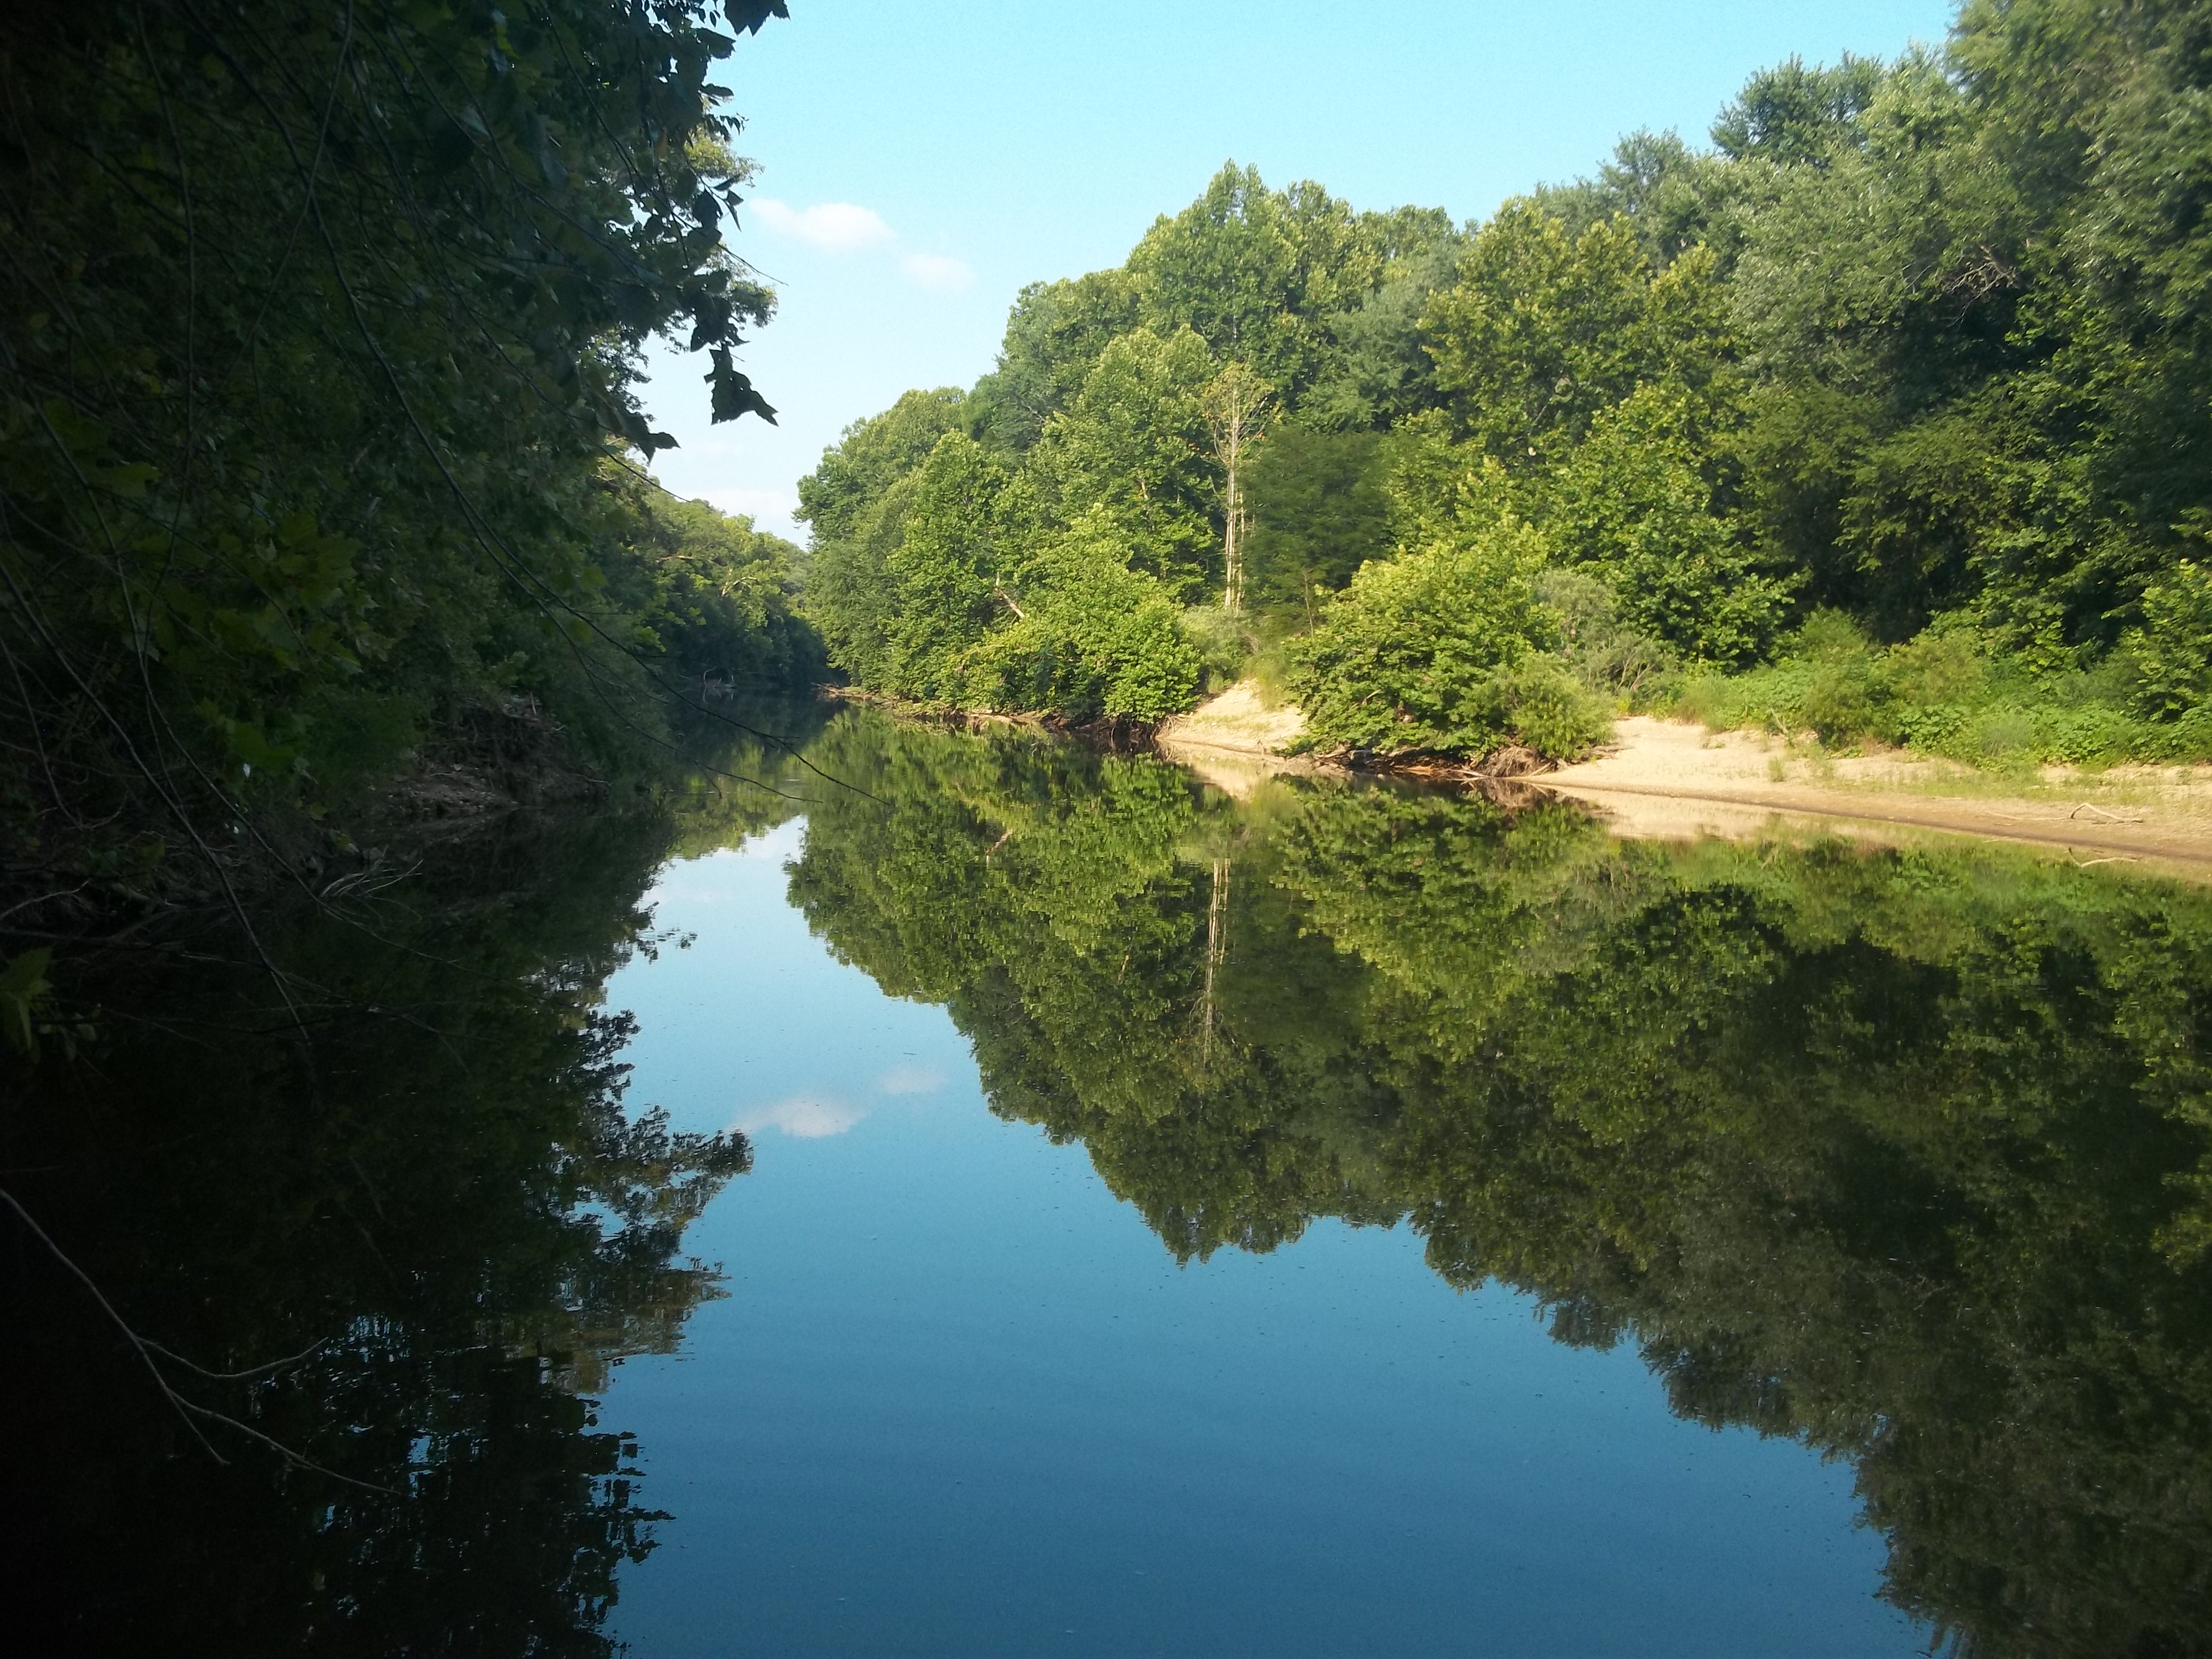 The thick forests of the Ozark foothills line the river on both sides, creating a beautiful setting.